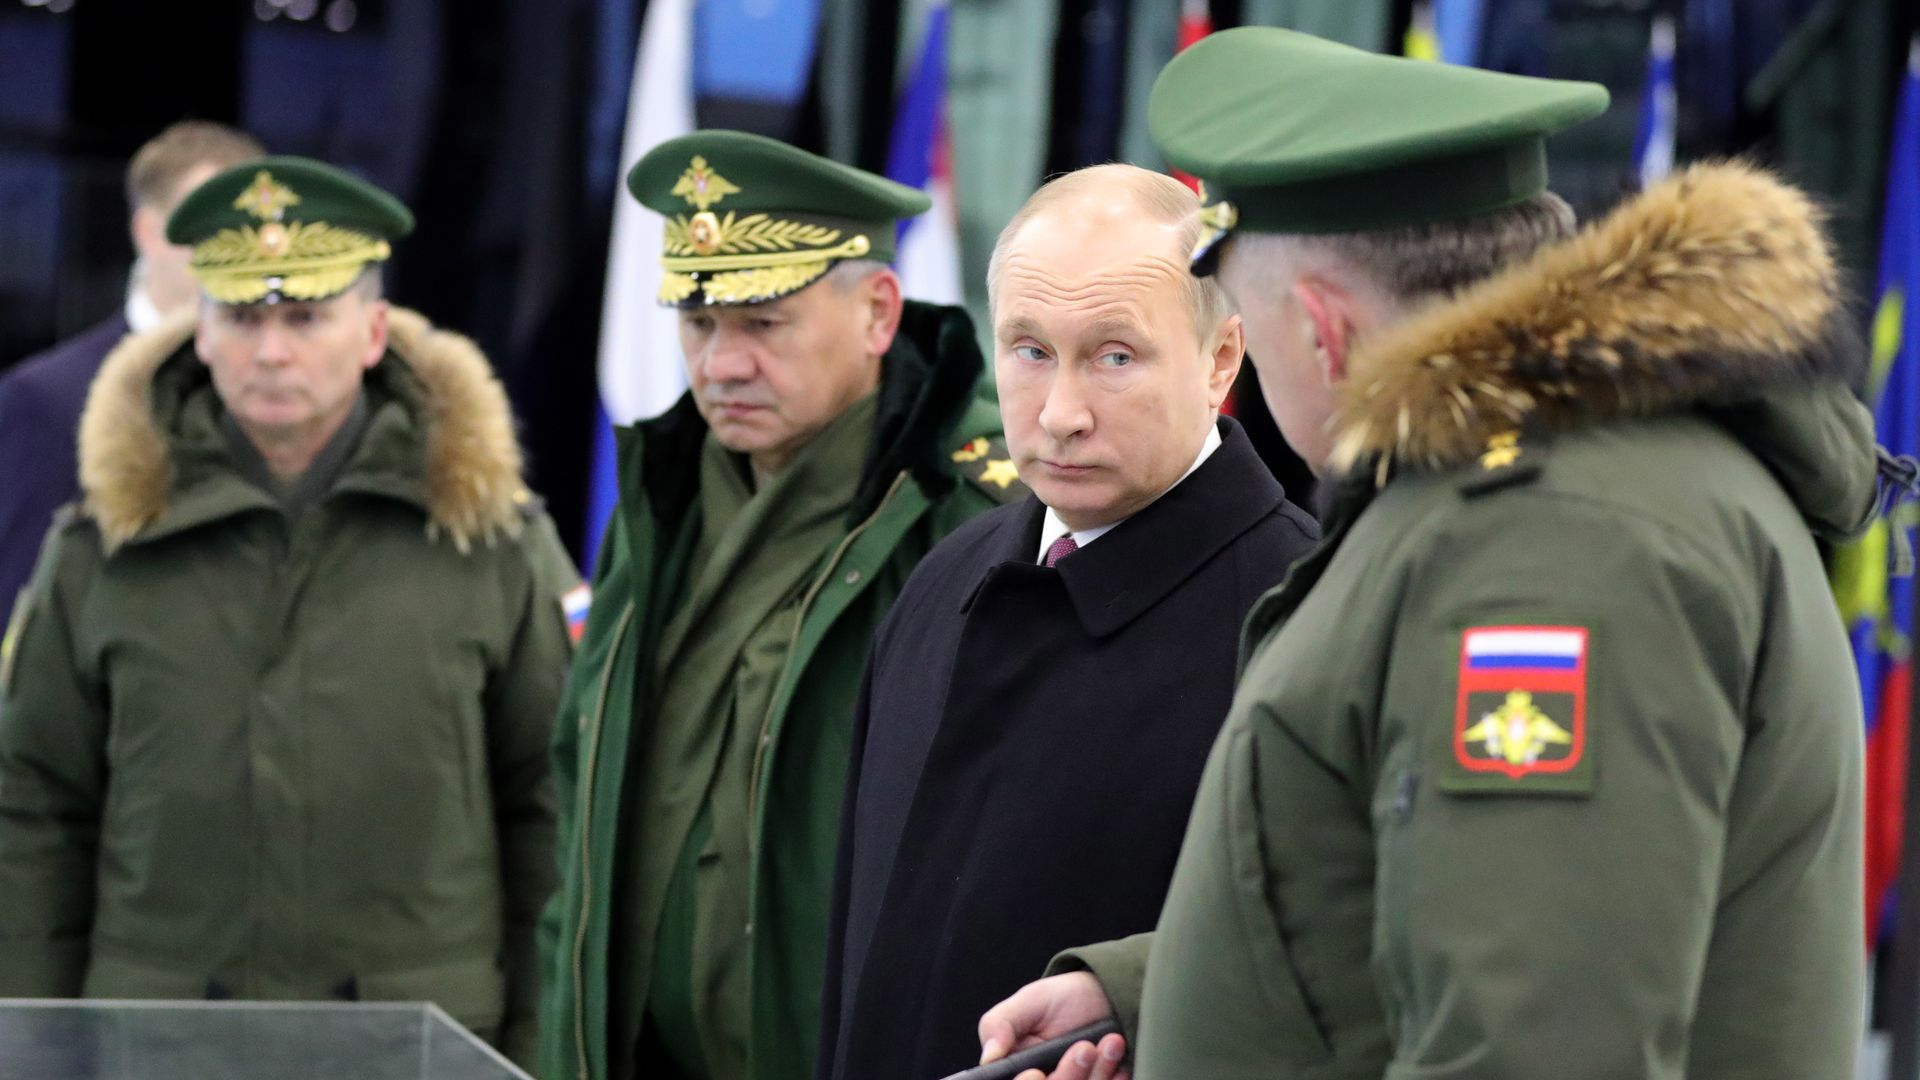 Putin with military generals